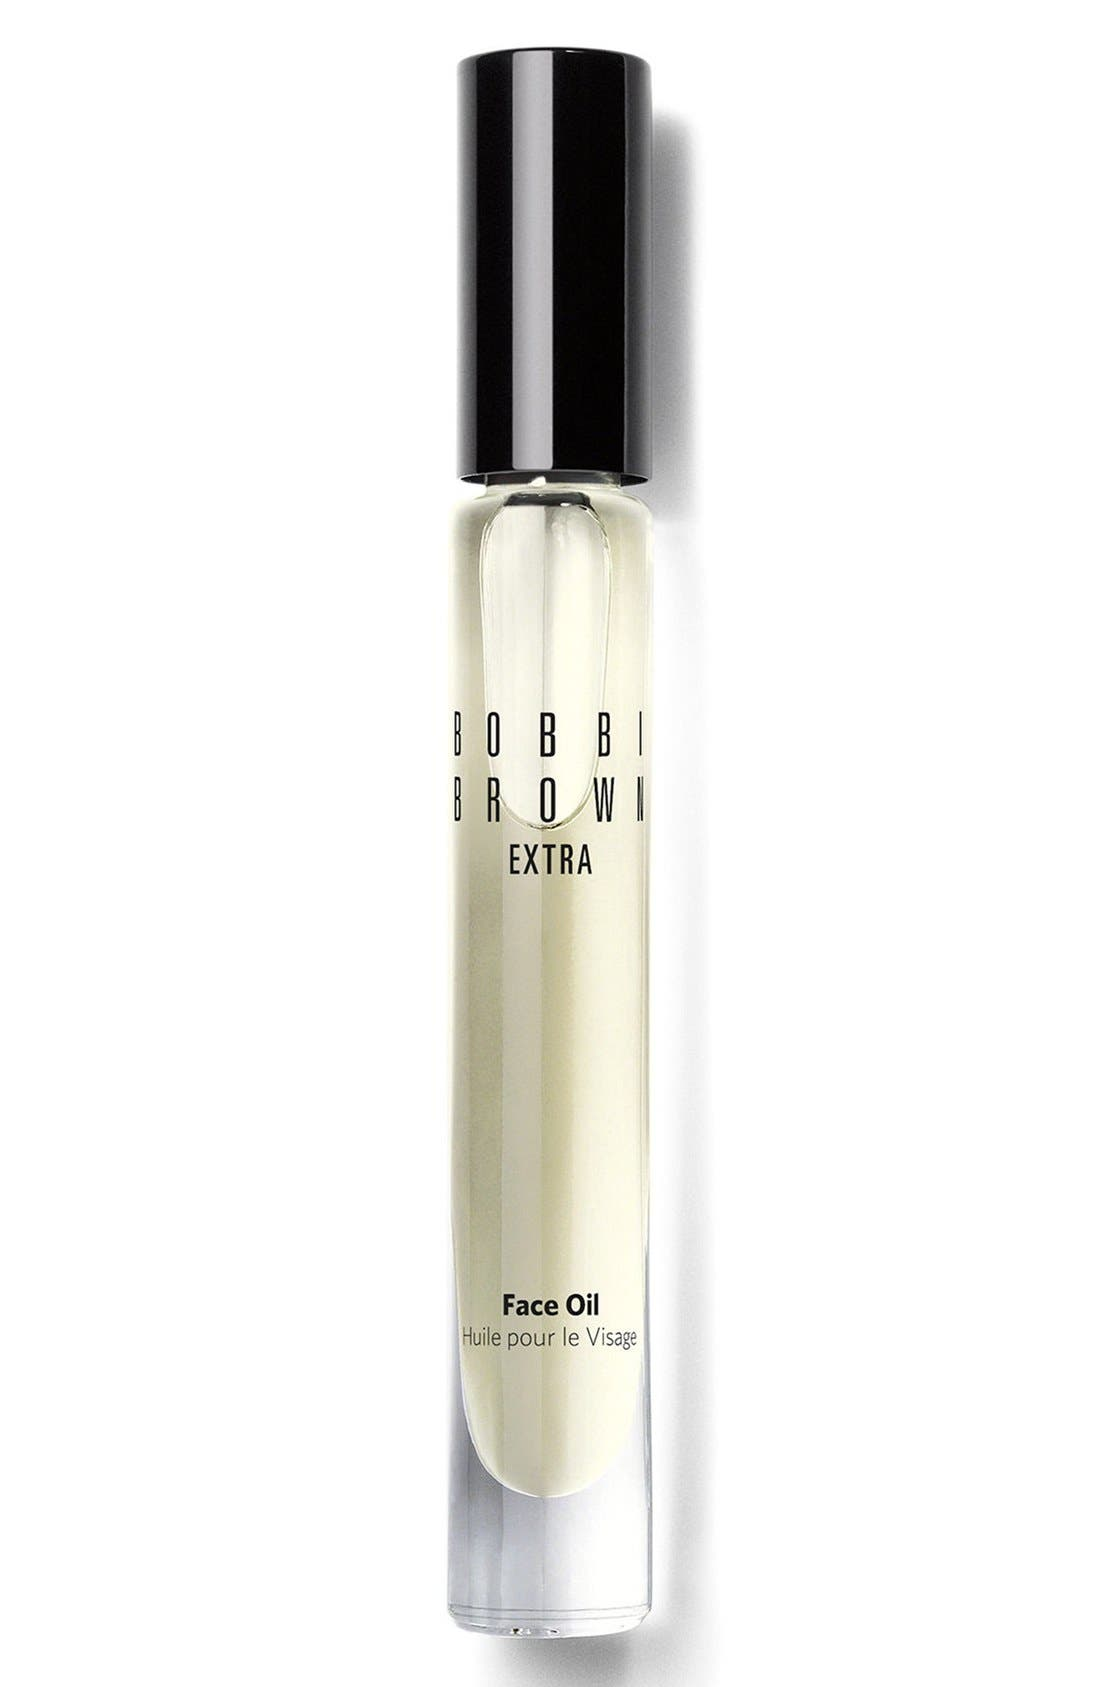 Bobbi Brown 'Extra' Face Oil Rollerball